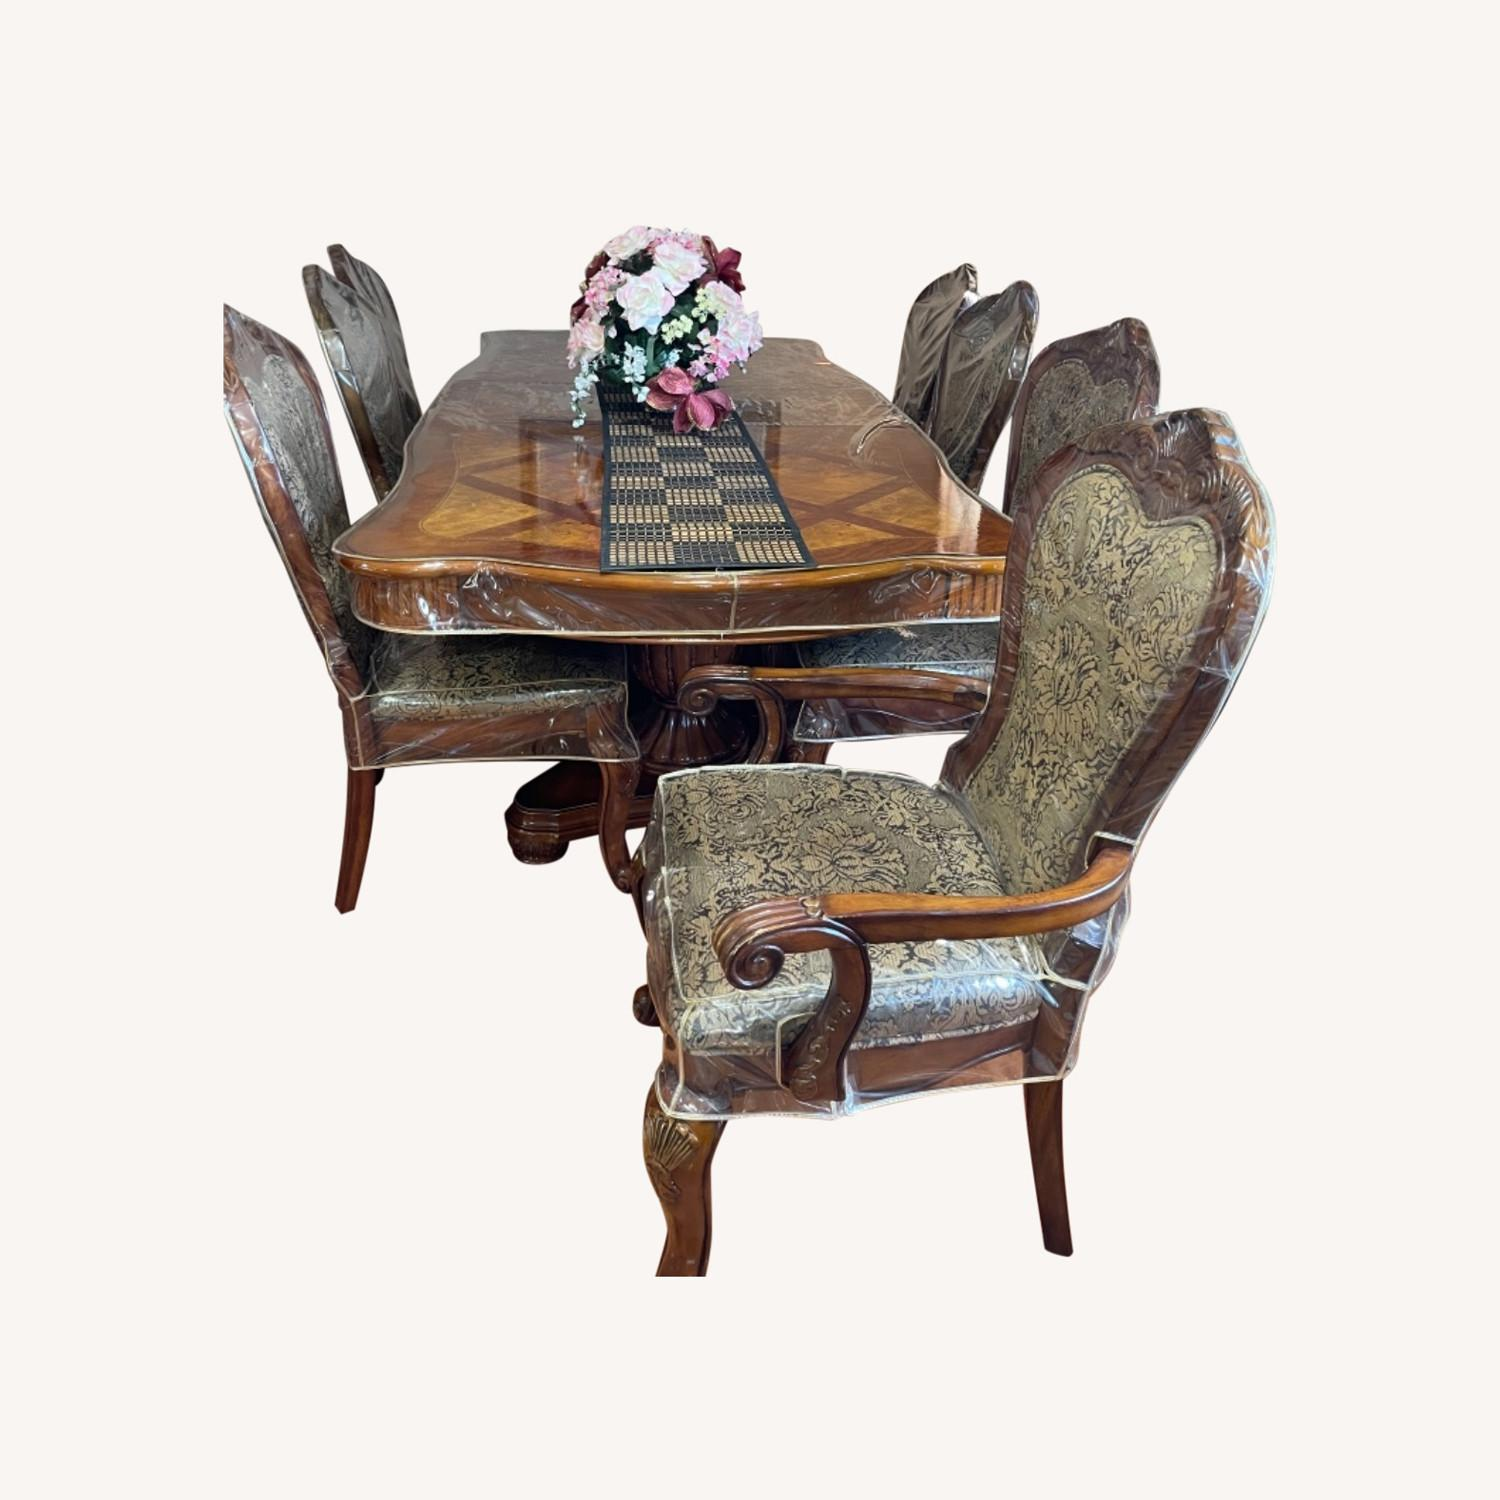 Dining Table Set with 8 Chairs - image-0